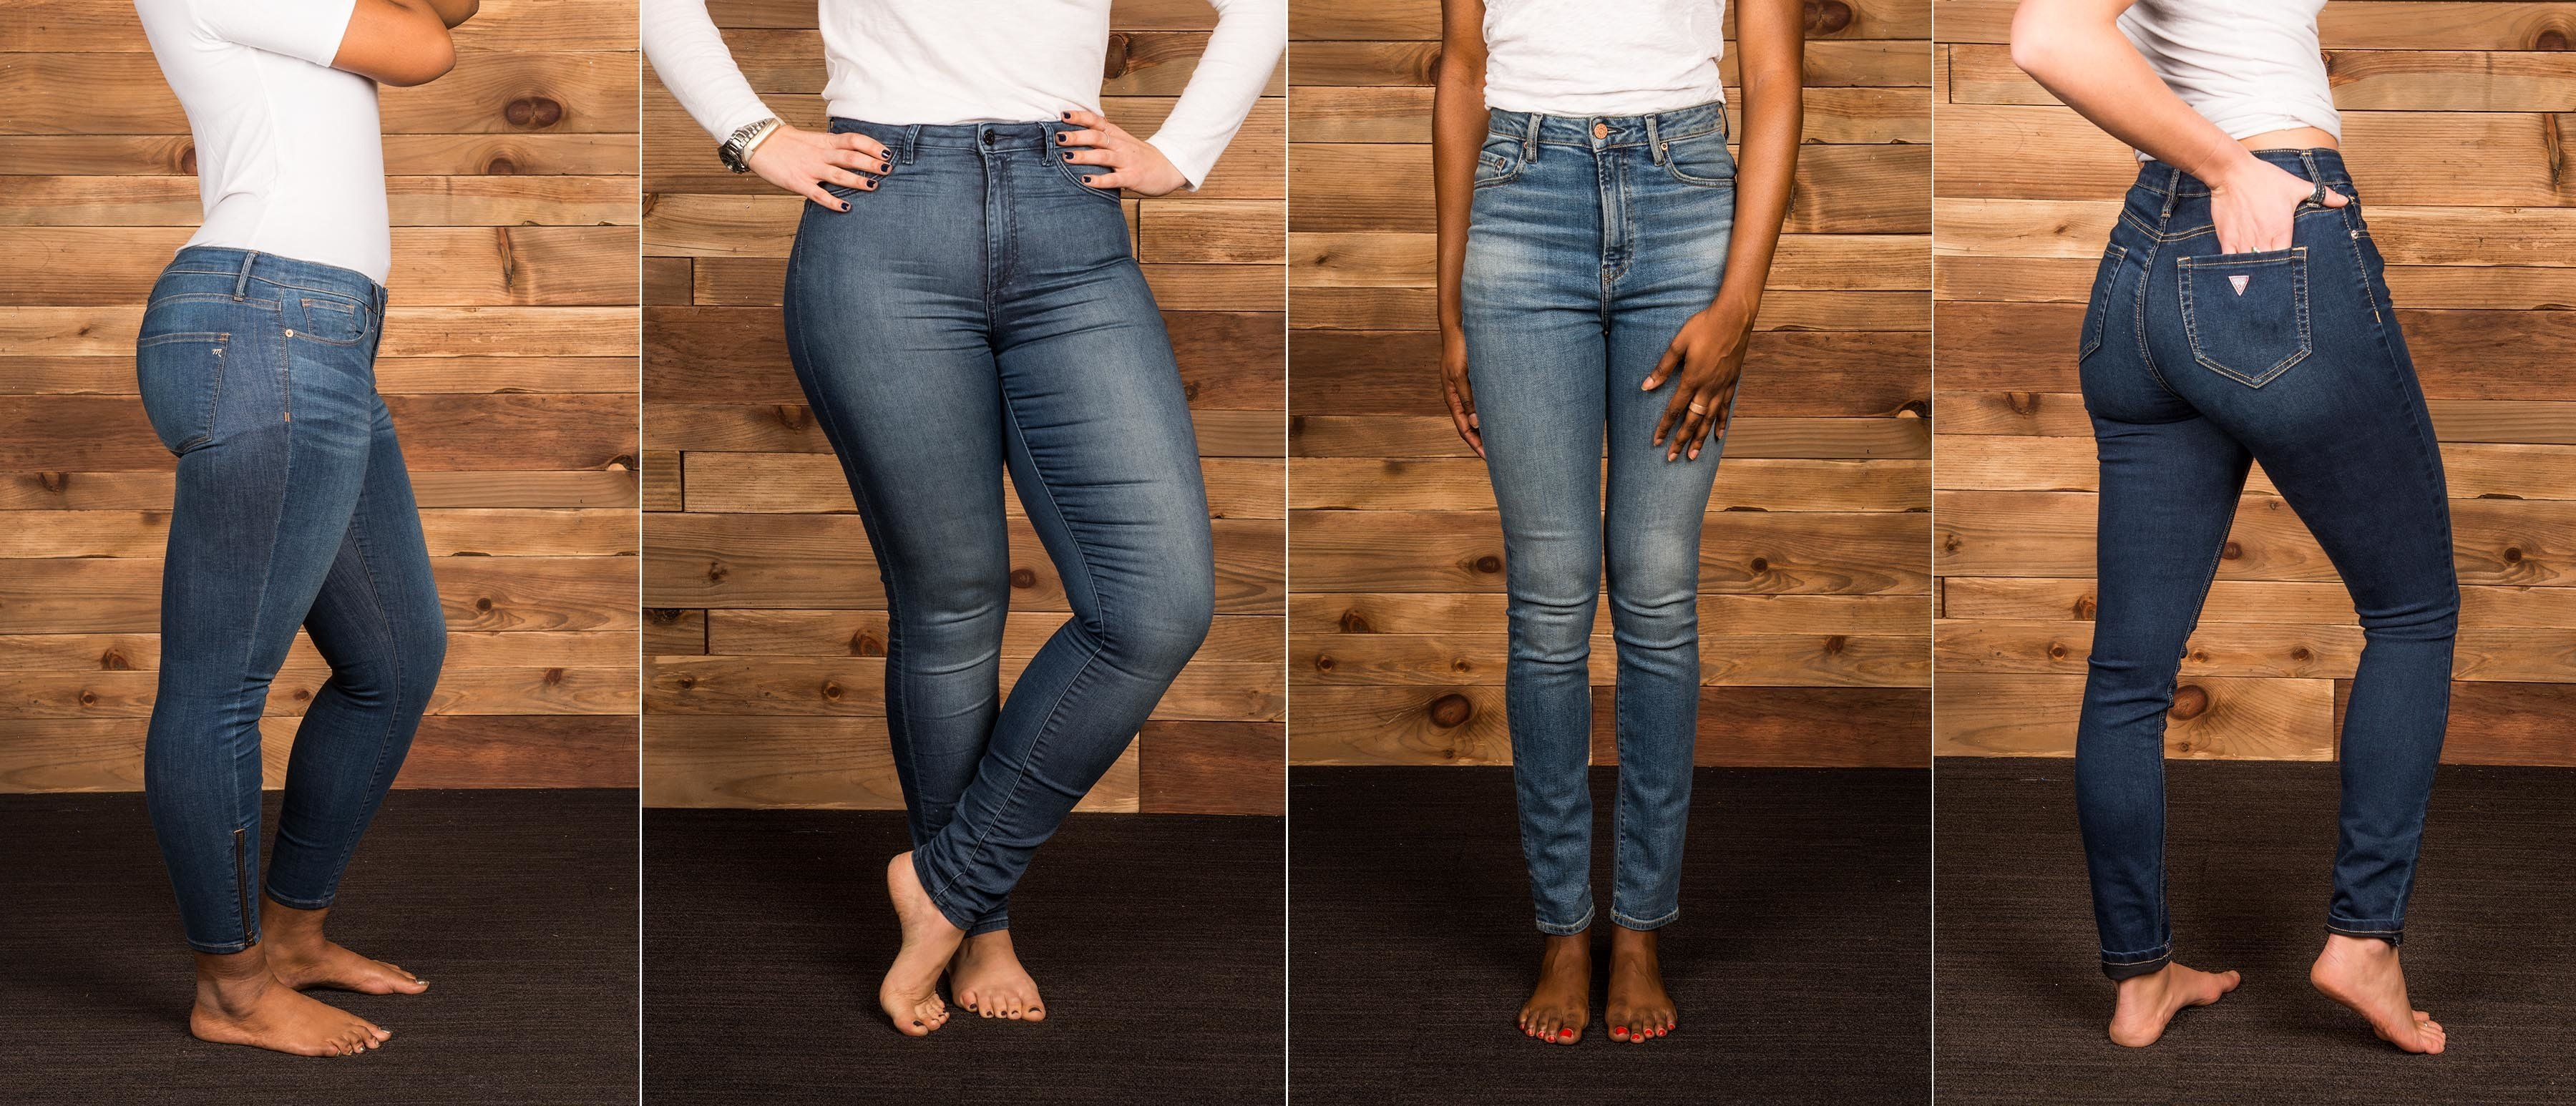 Best skinny jeans for curvy figures canada